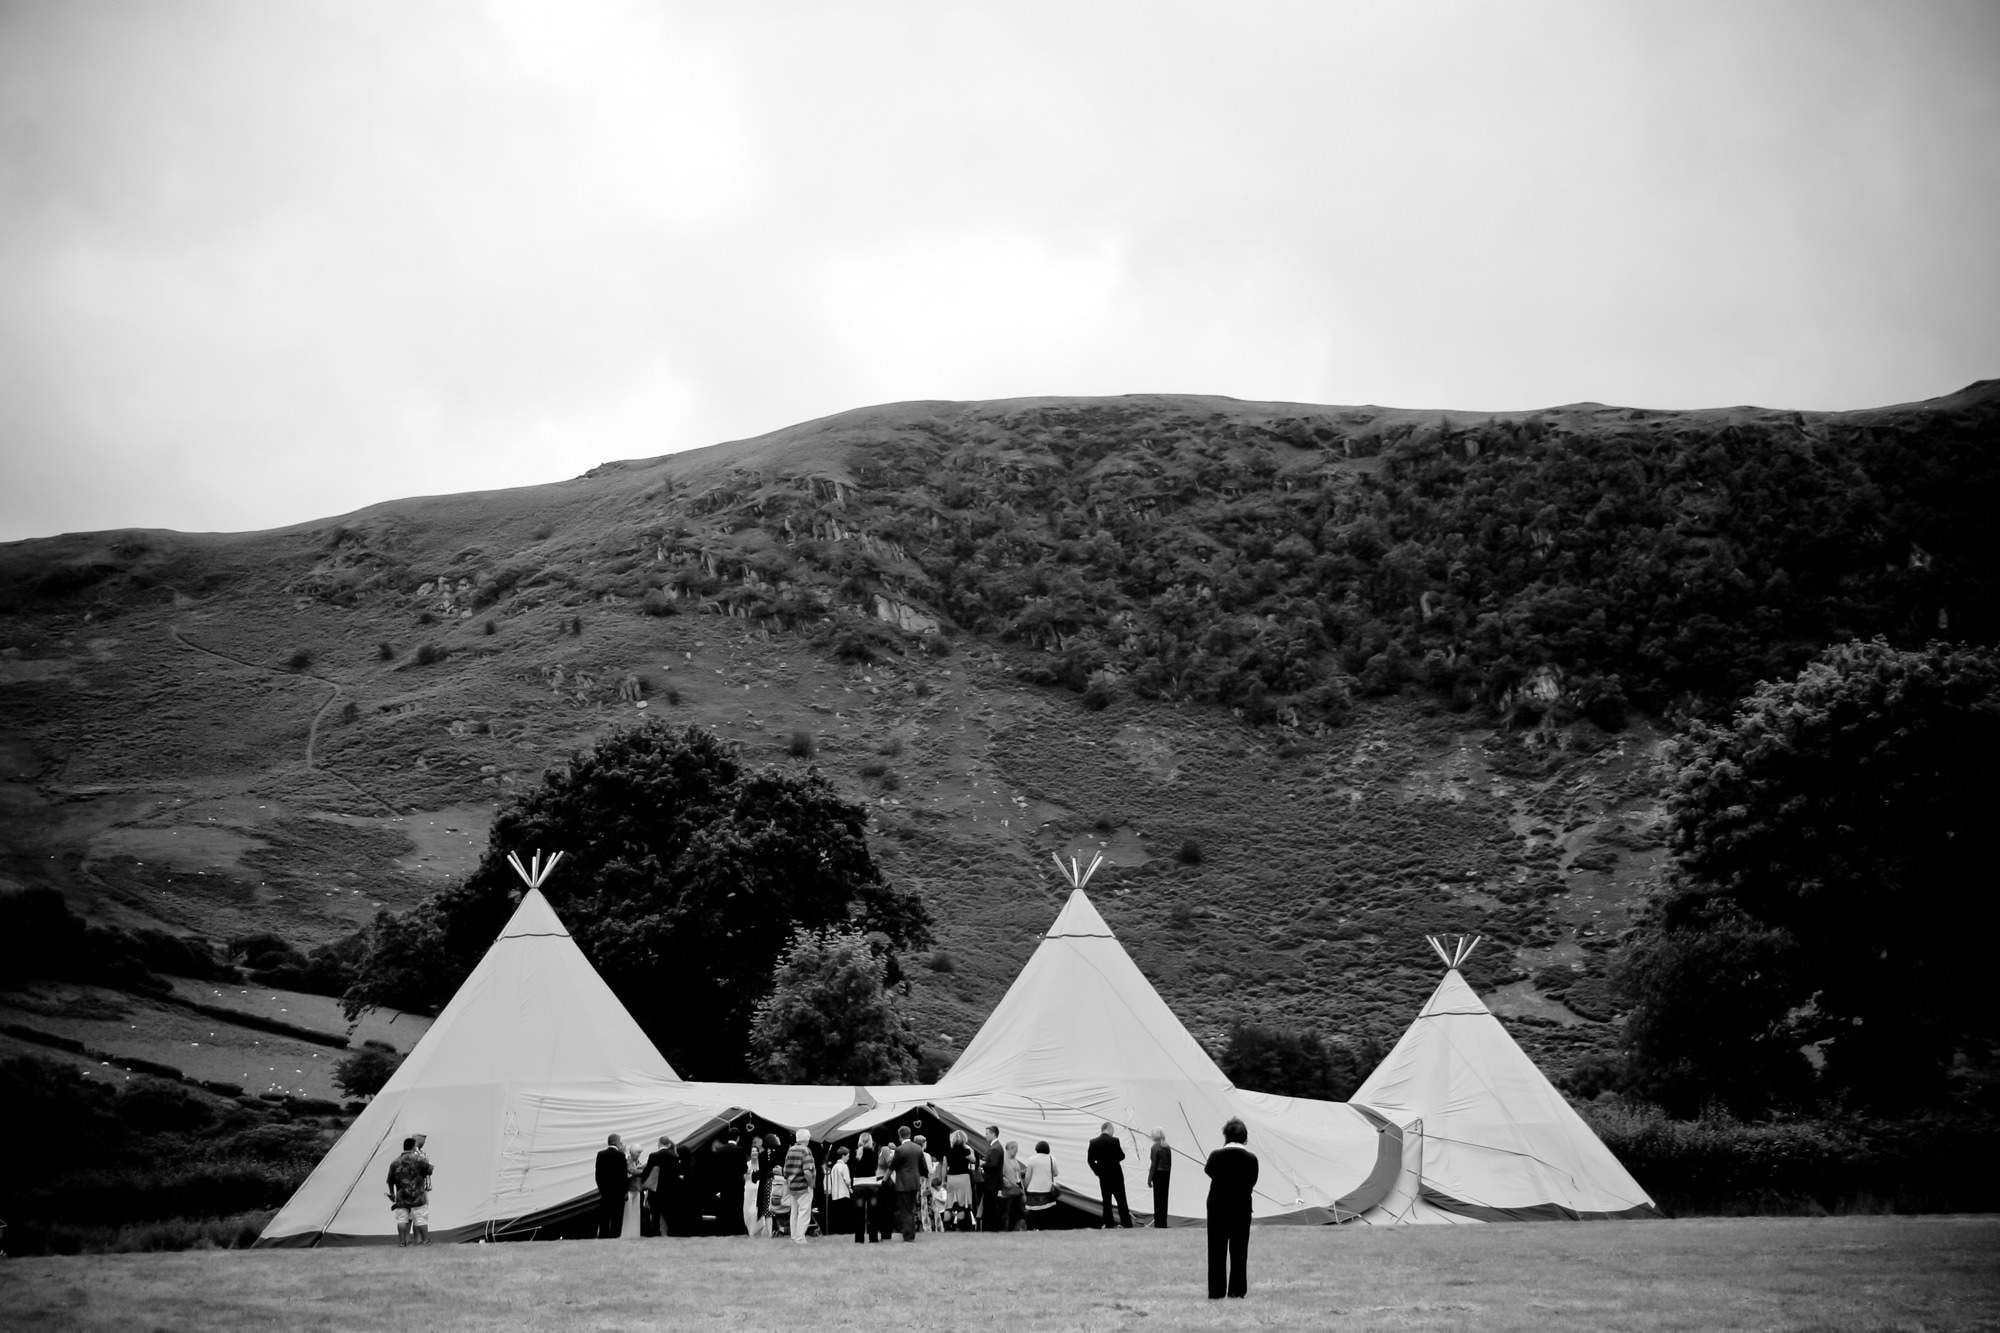 Tipi being used for a wedding